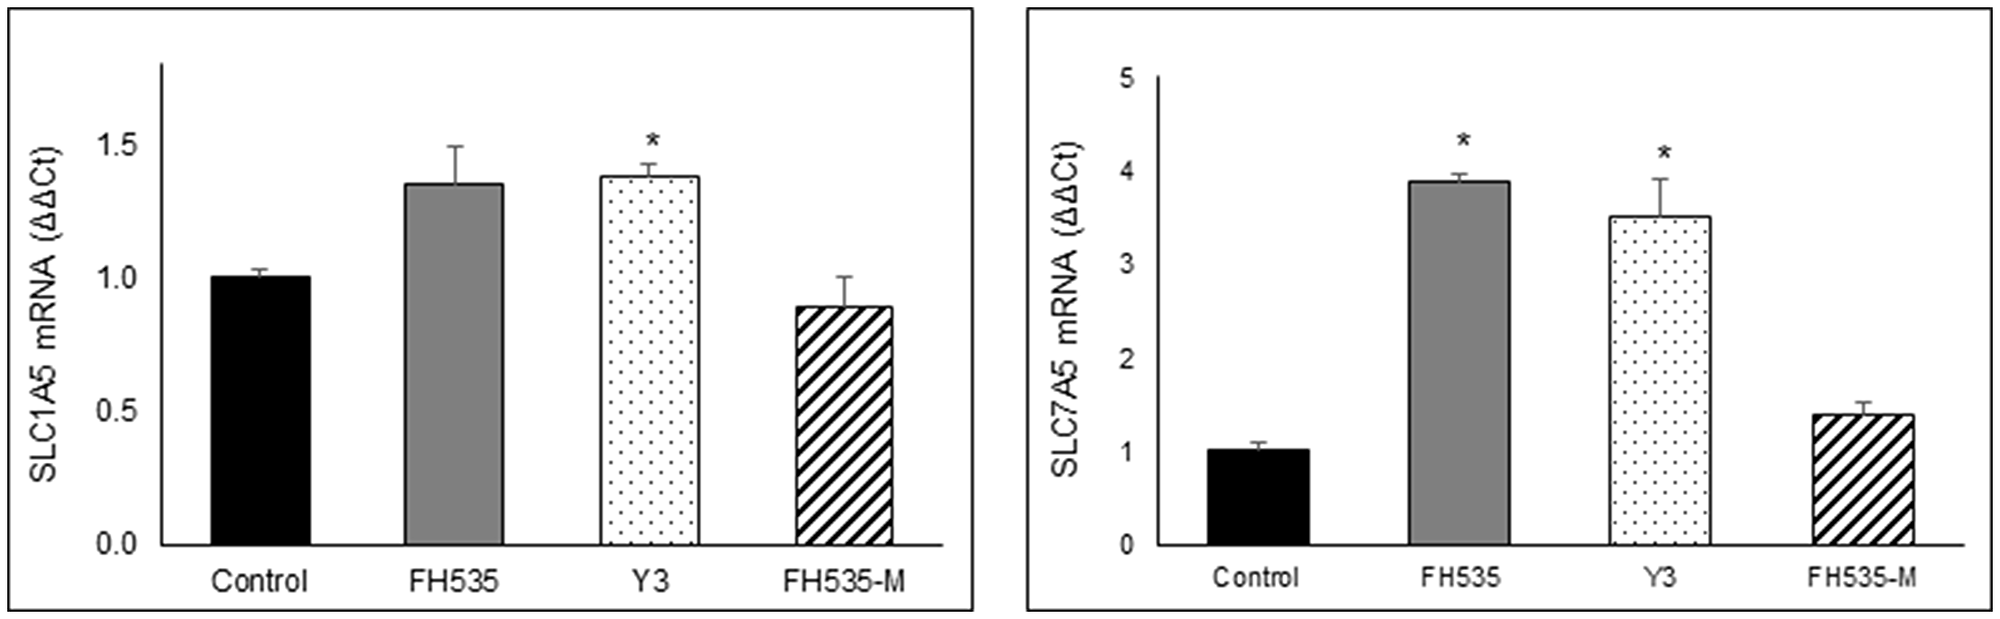 Relative expression of SLC1A5 and SLC7A5 mRNA were determined by real time-PCR after 48 treatment of Huh7 cells with 10 μM of the indicated compounds using B2M gene for normalization.